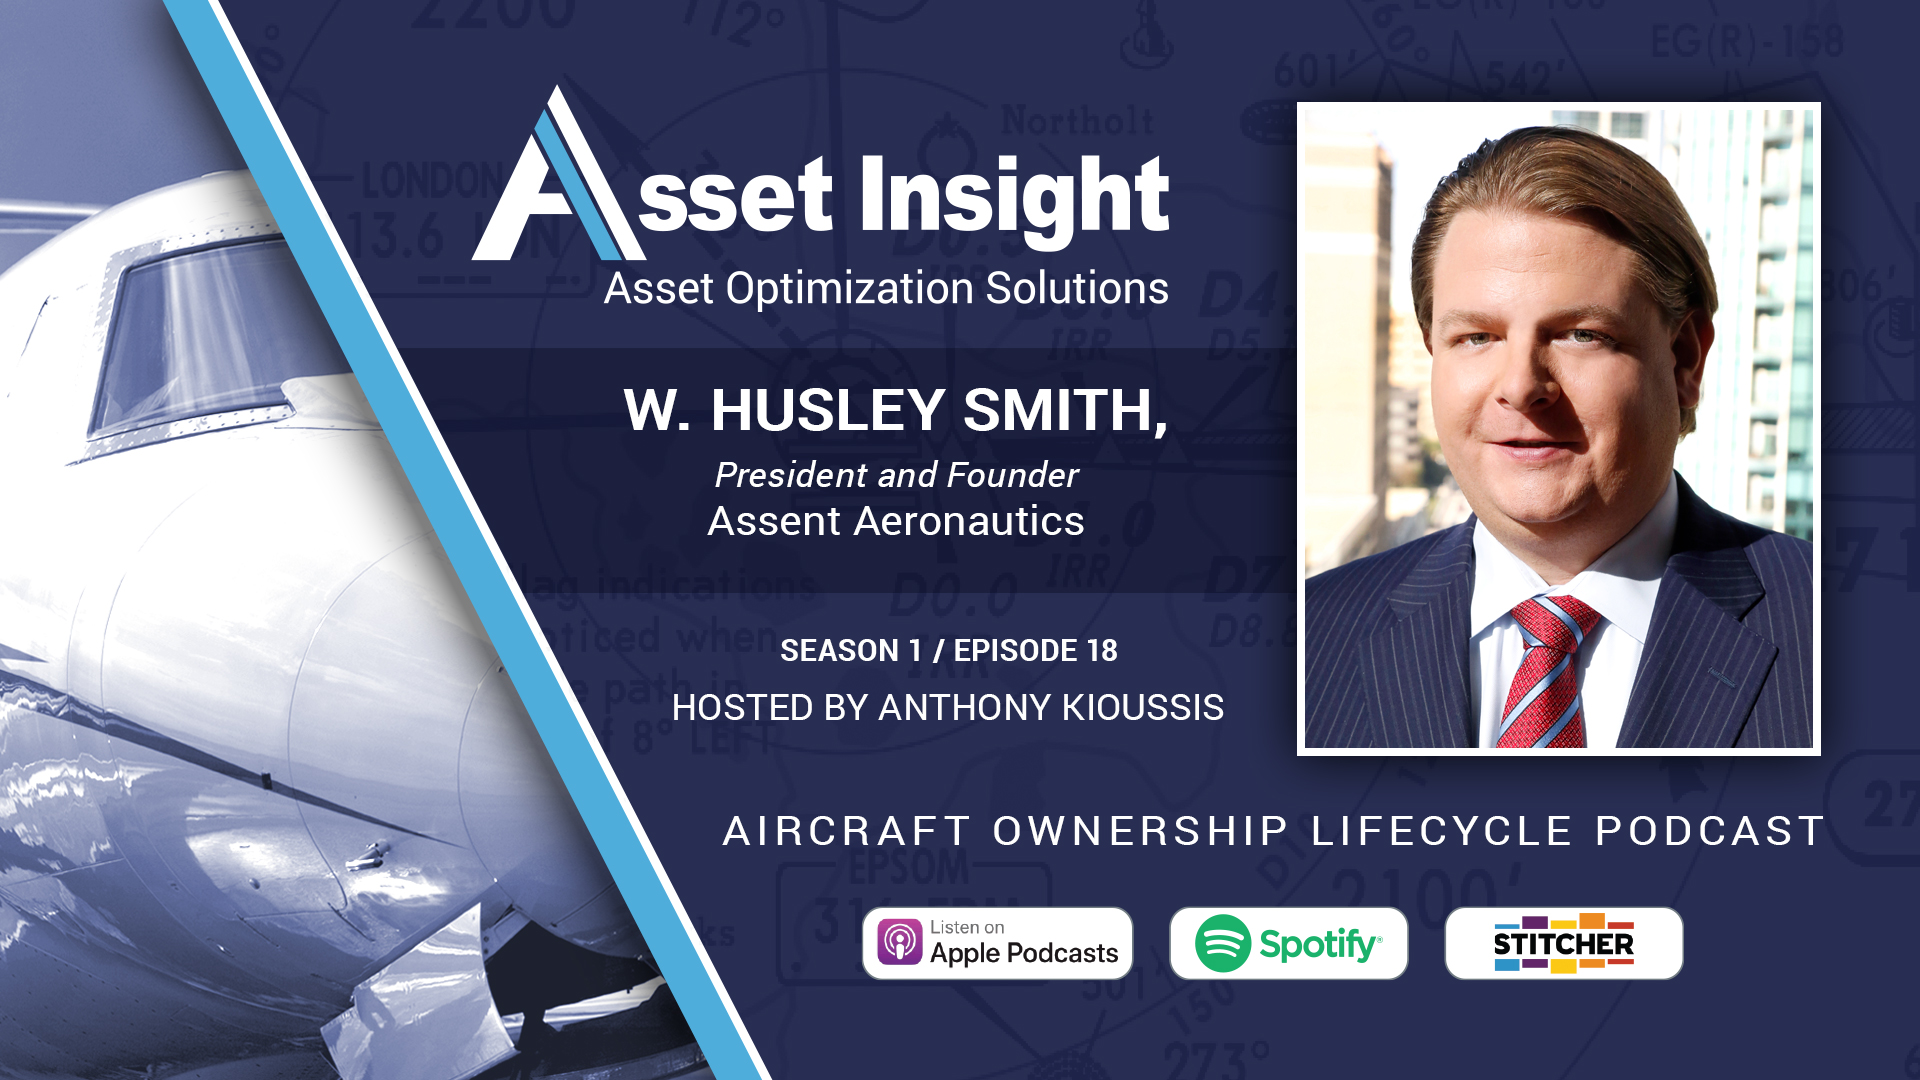 W Husley Smith, President and Founder, Assent Aeronautics